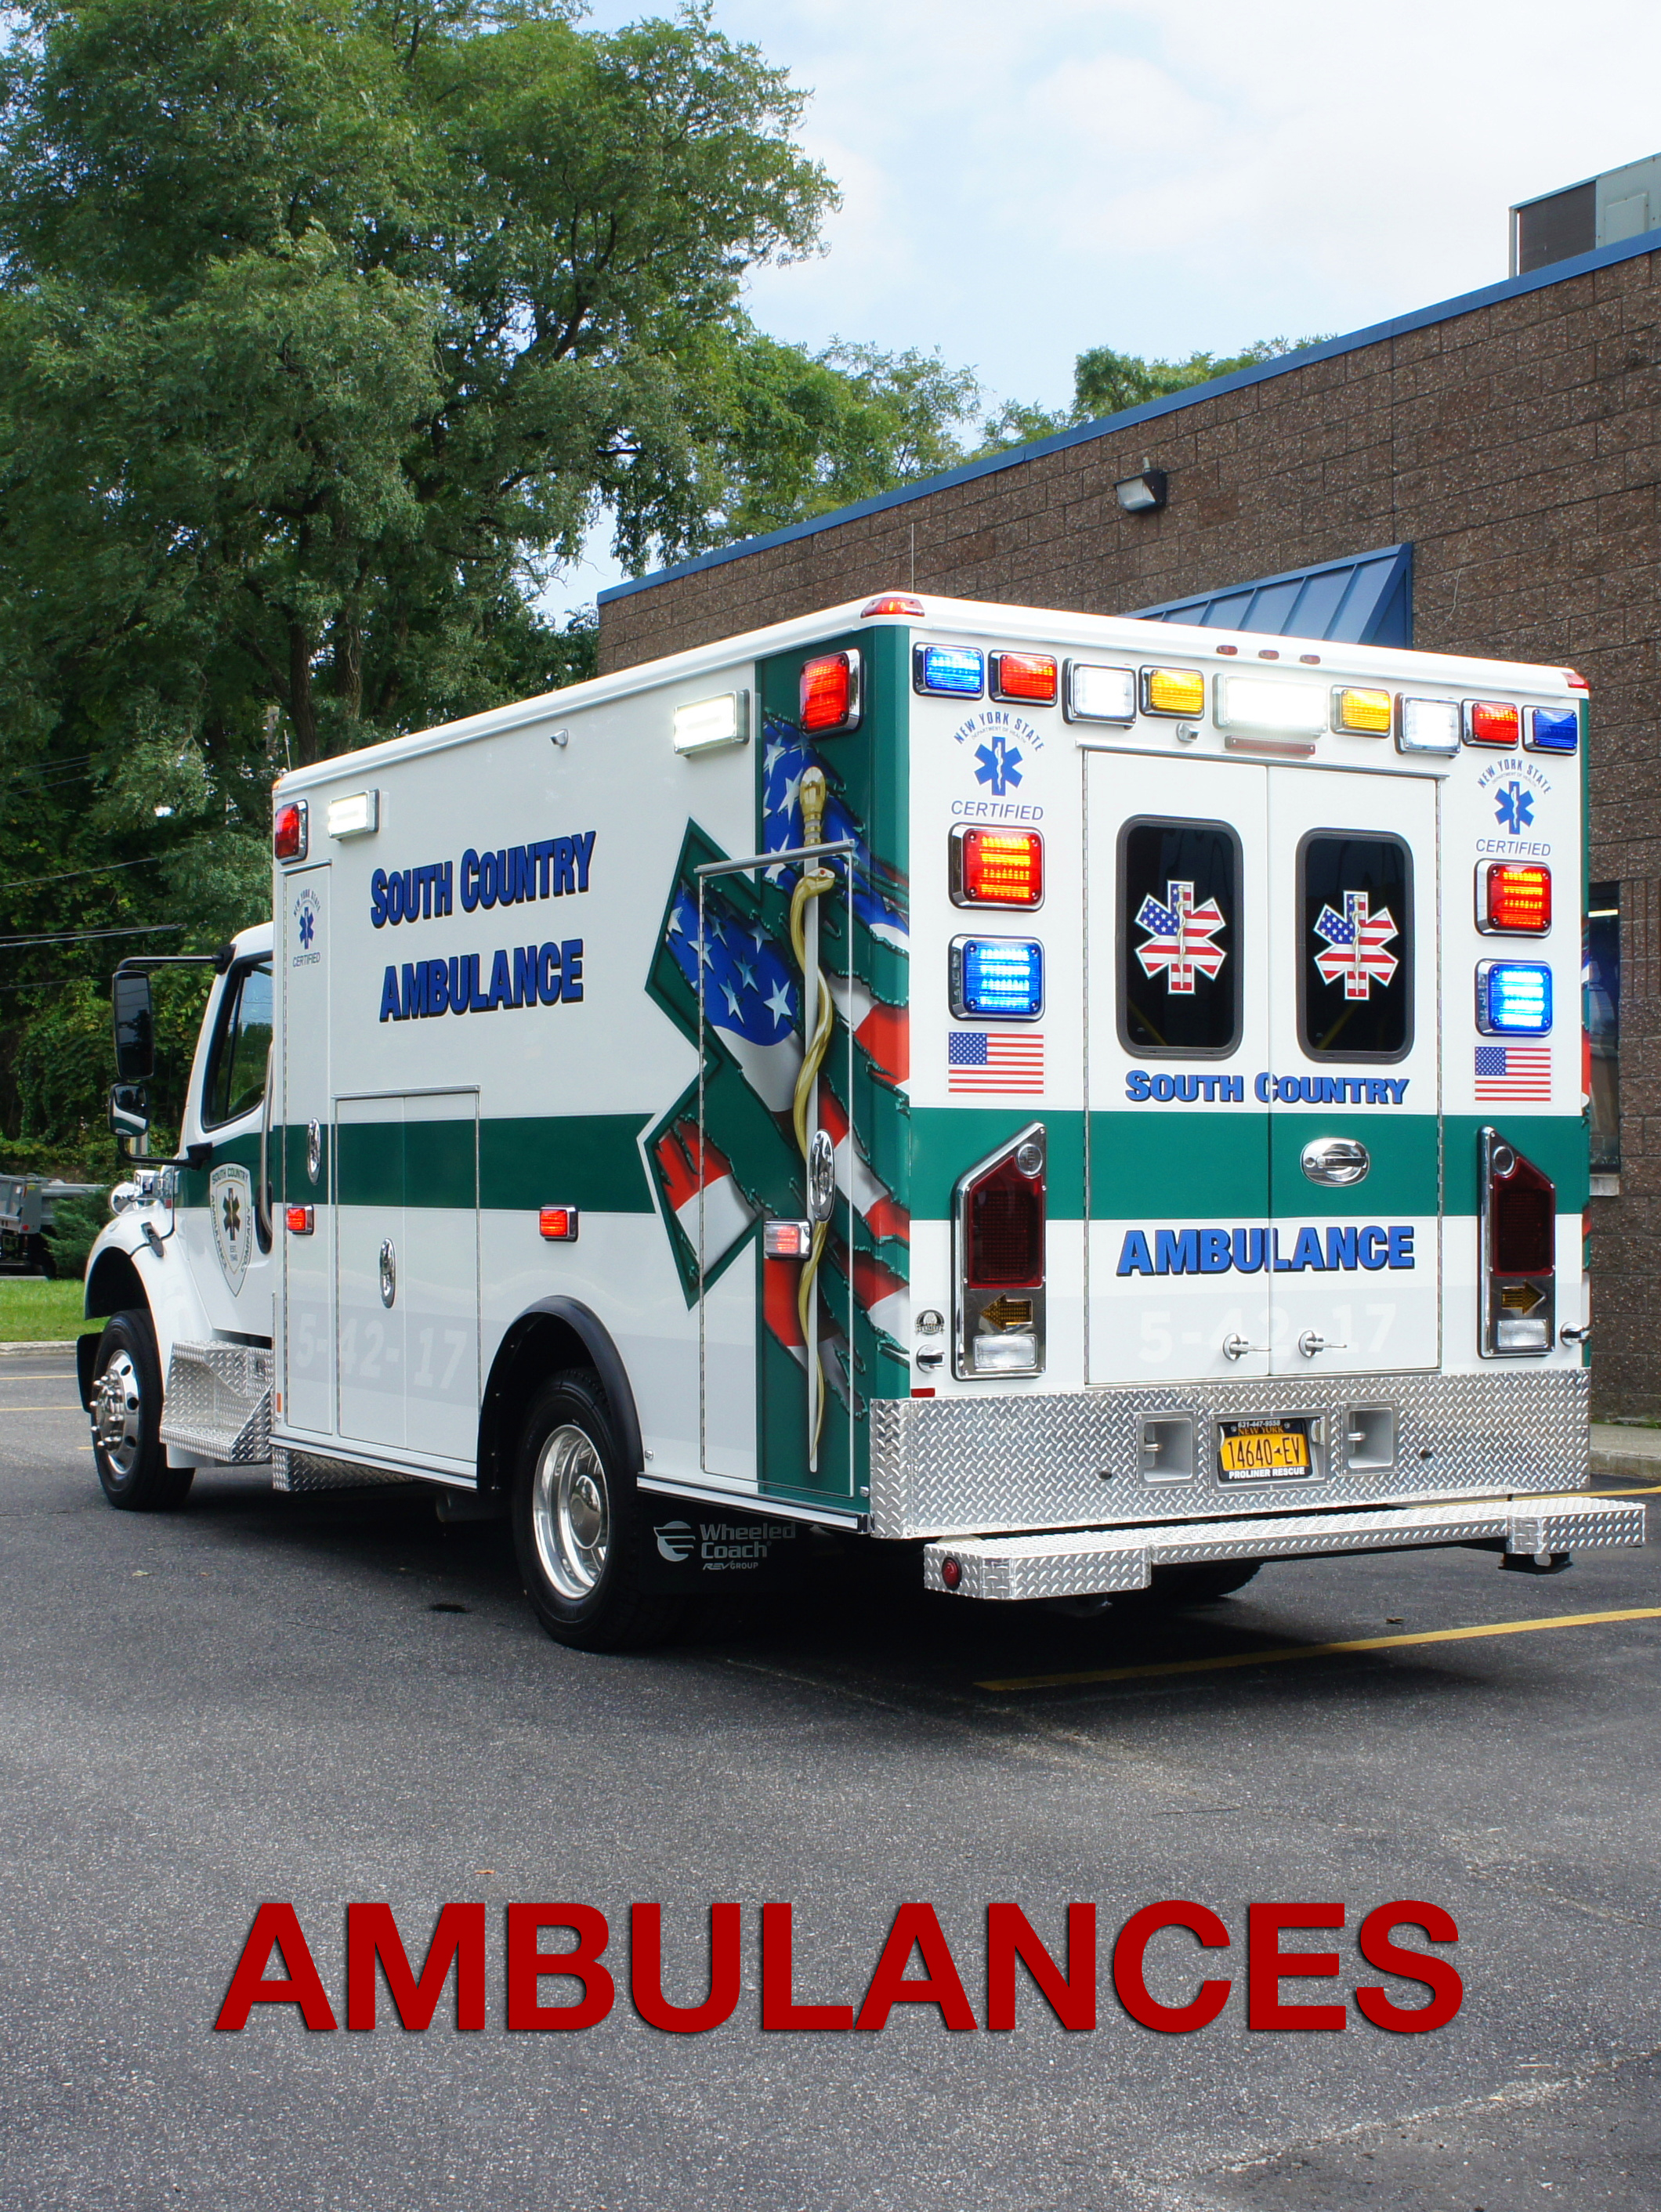 AMBULANCES.jpg